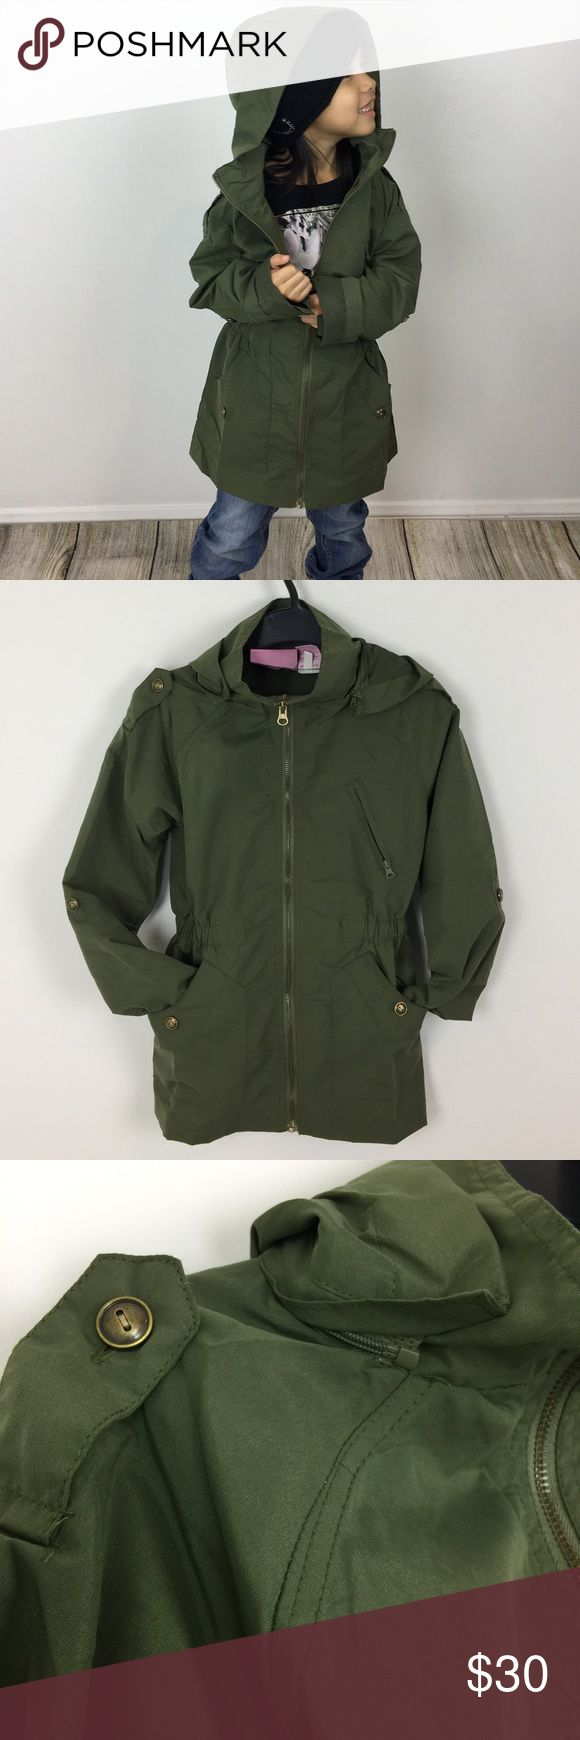 Little Girls Olive Green Military/Utility Jacket Perfect for your mini me! Kids olive green utility jacket is lightweight and features removable hood, 2 hand pockets, a chest zip pocket, shoulder straps, and an elastic waist. Sleeves can be rolled up and buttoned with sleeve tabs. Lead free, CPSIA Compliance. Sizes come in 4/5 and 6/6X. Jackets & Coats